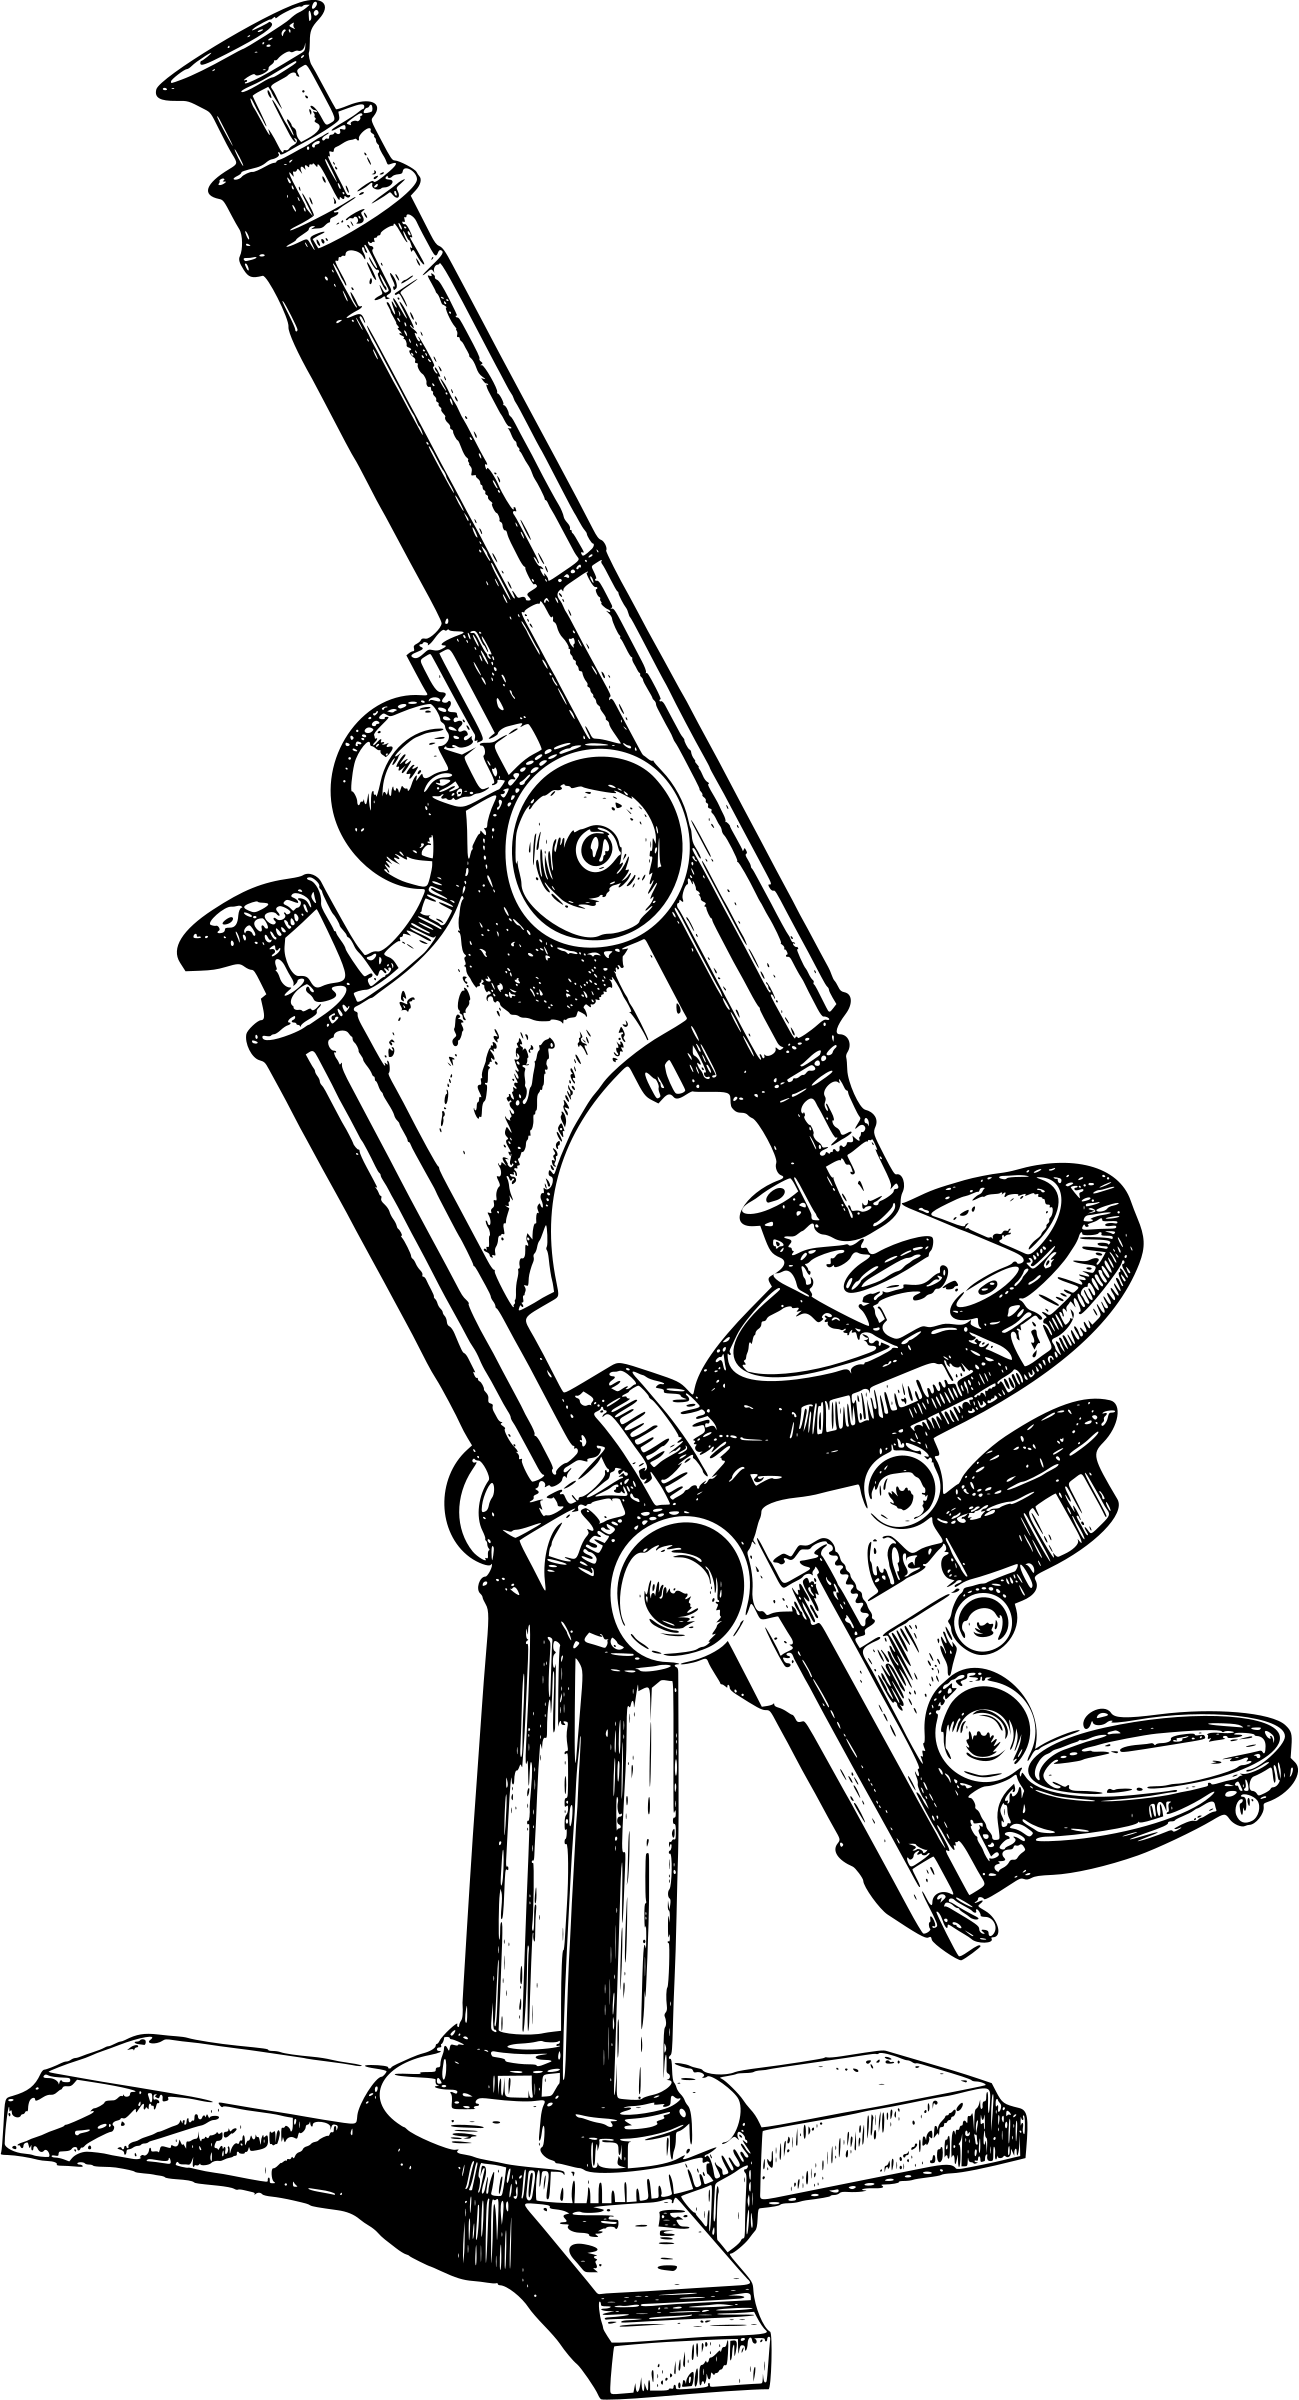 1299x2400 Vintage Microscope Transparent Png